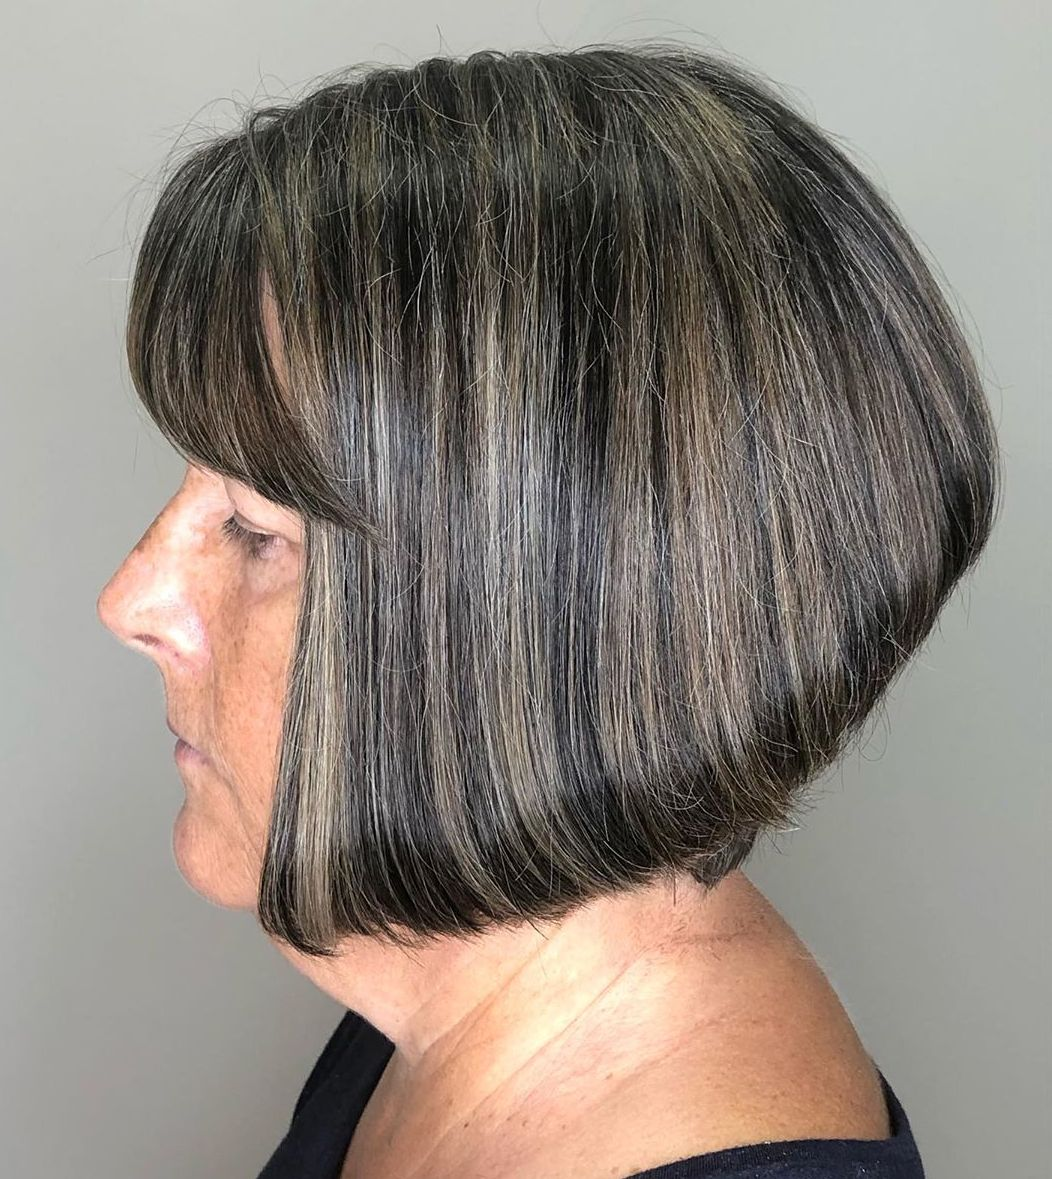 Stacked Haircut for a Round Face